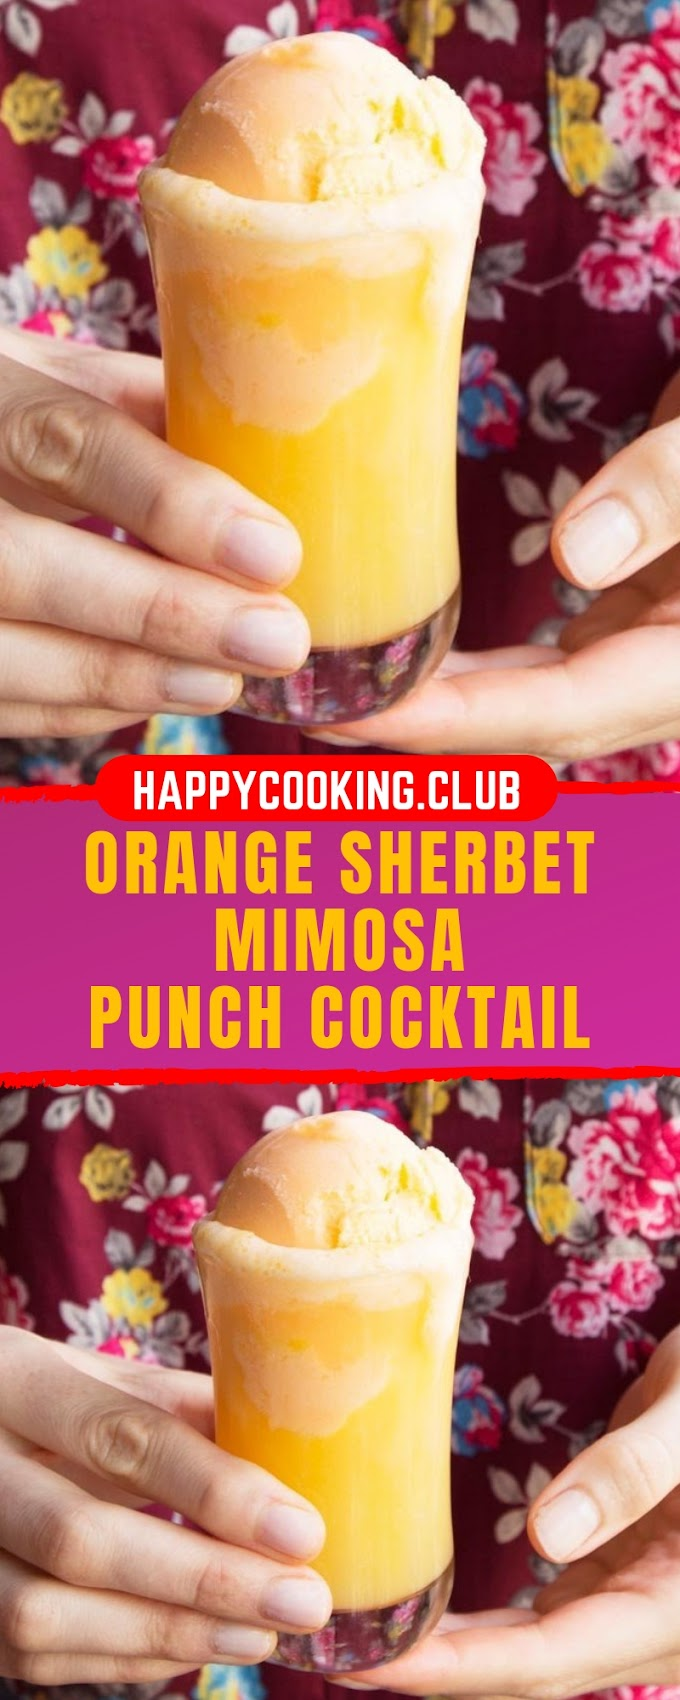 ORANGE SHERBET MIMOSA PUNCH COCKTAIL